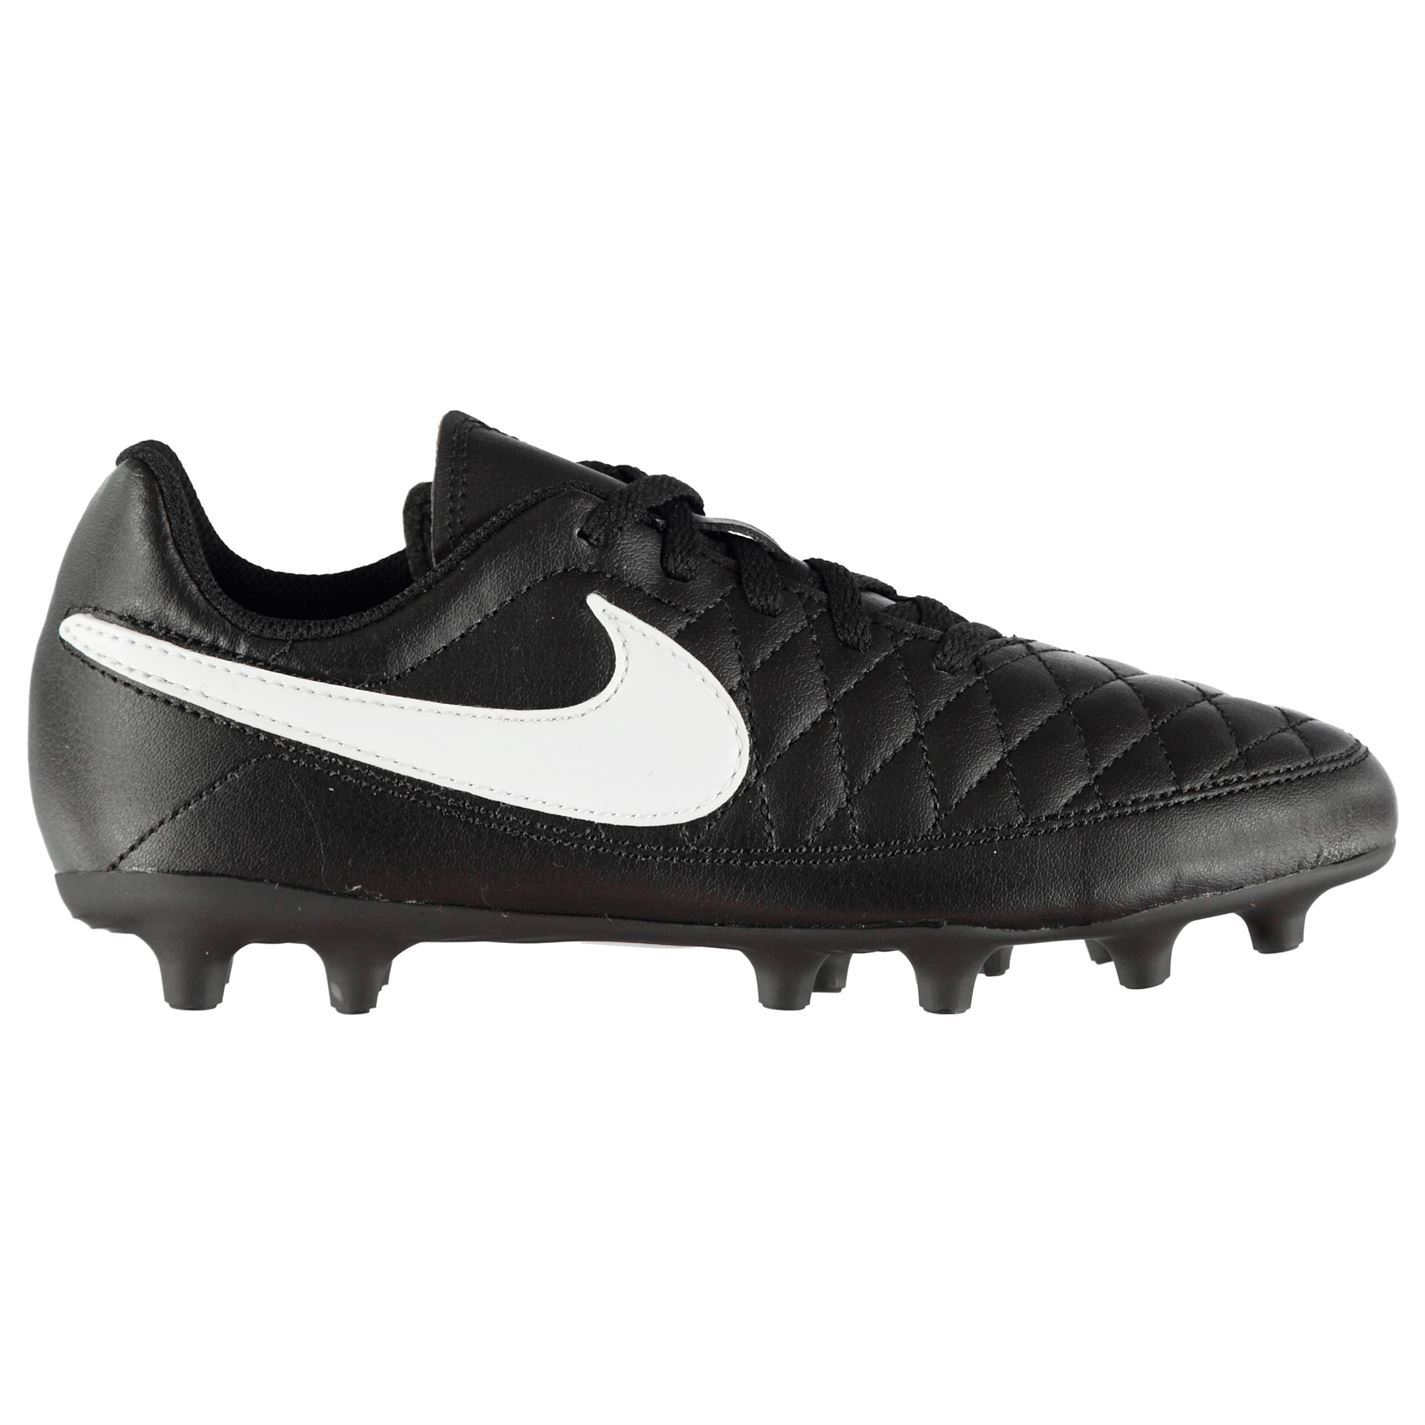 Nike-majestry-FG-Firm-Ground-Chaussures-De-Football-Enfants-Football-Chaussures-Crampons miniature 10